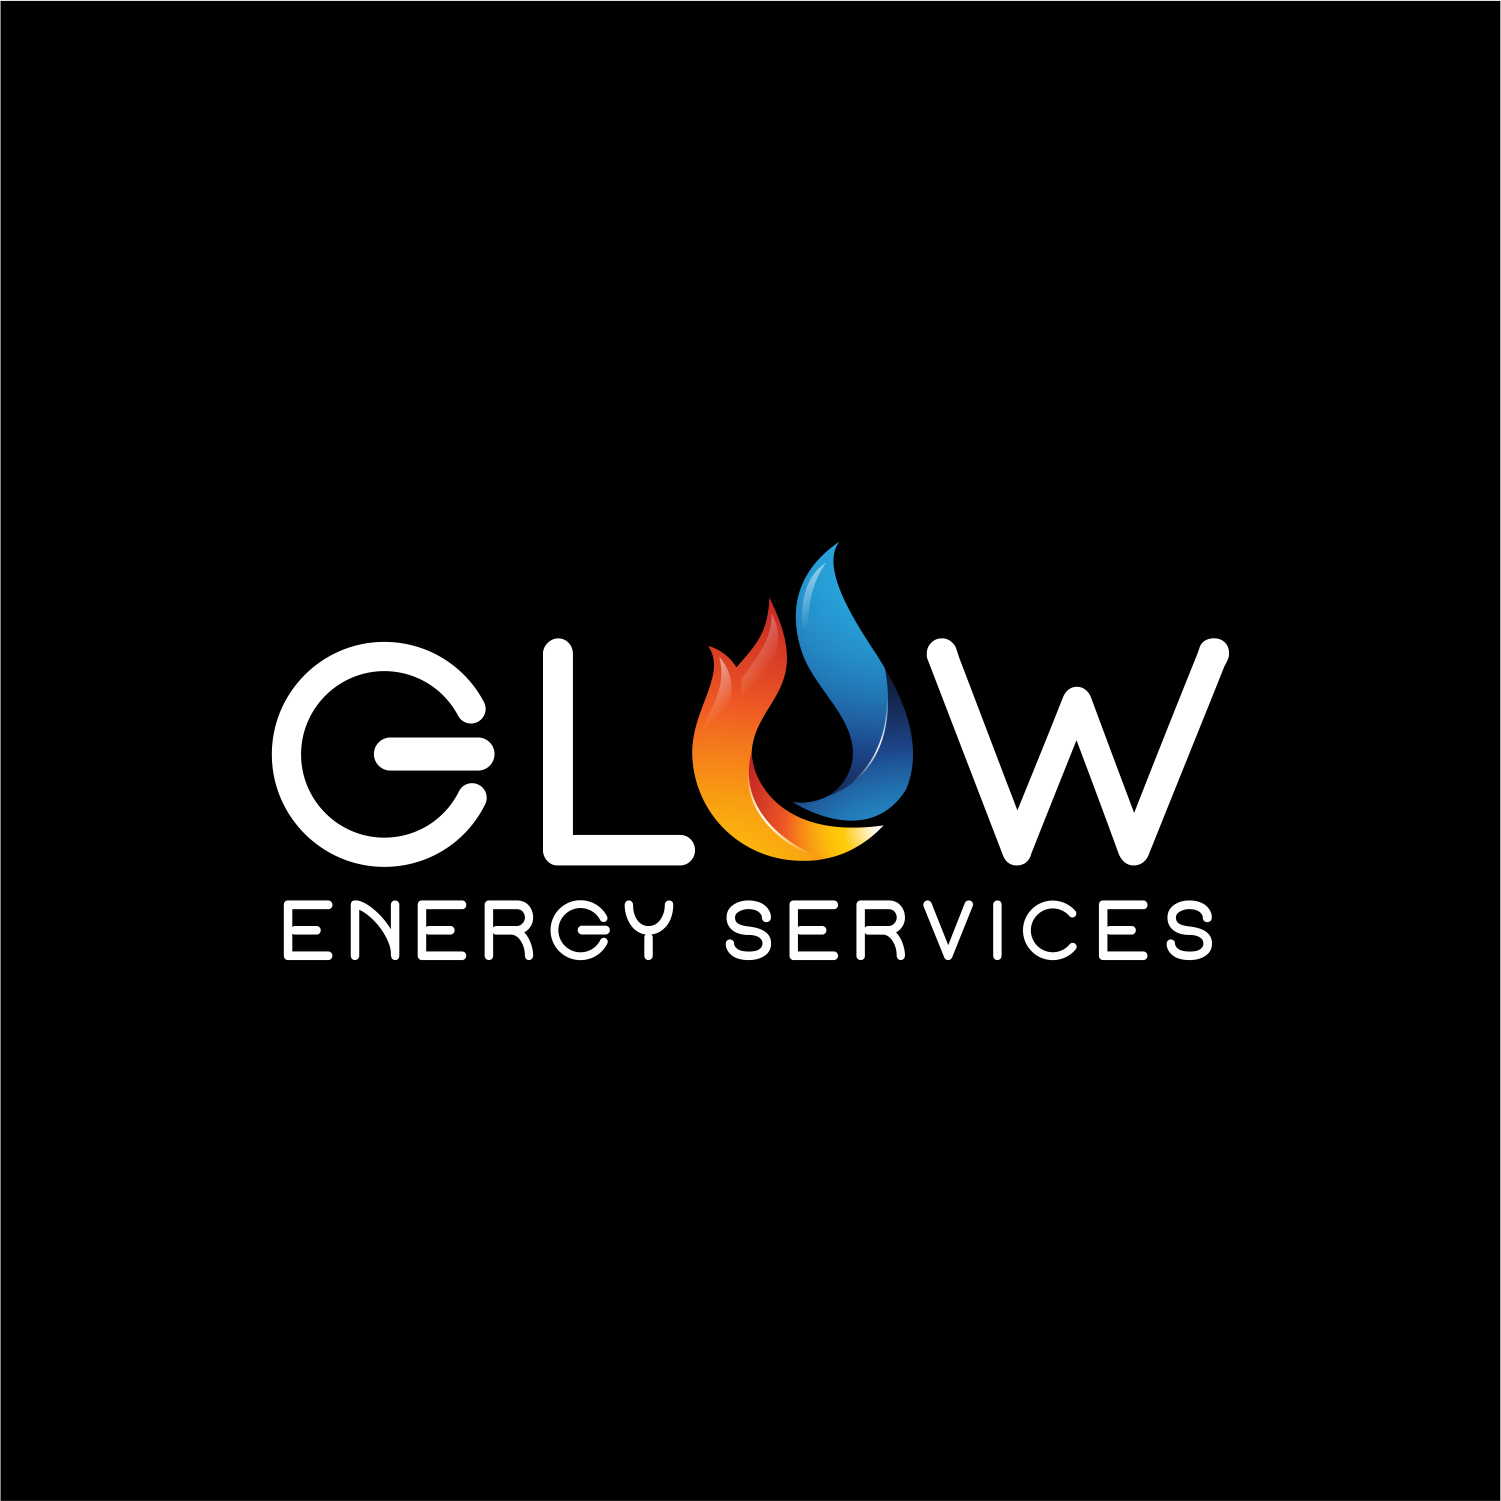 GLOW ENERGY SERVICES Verified Logo